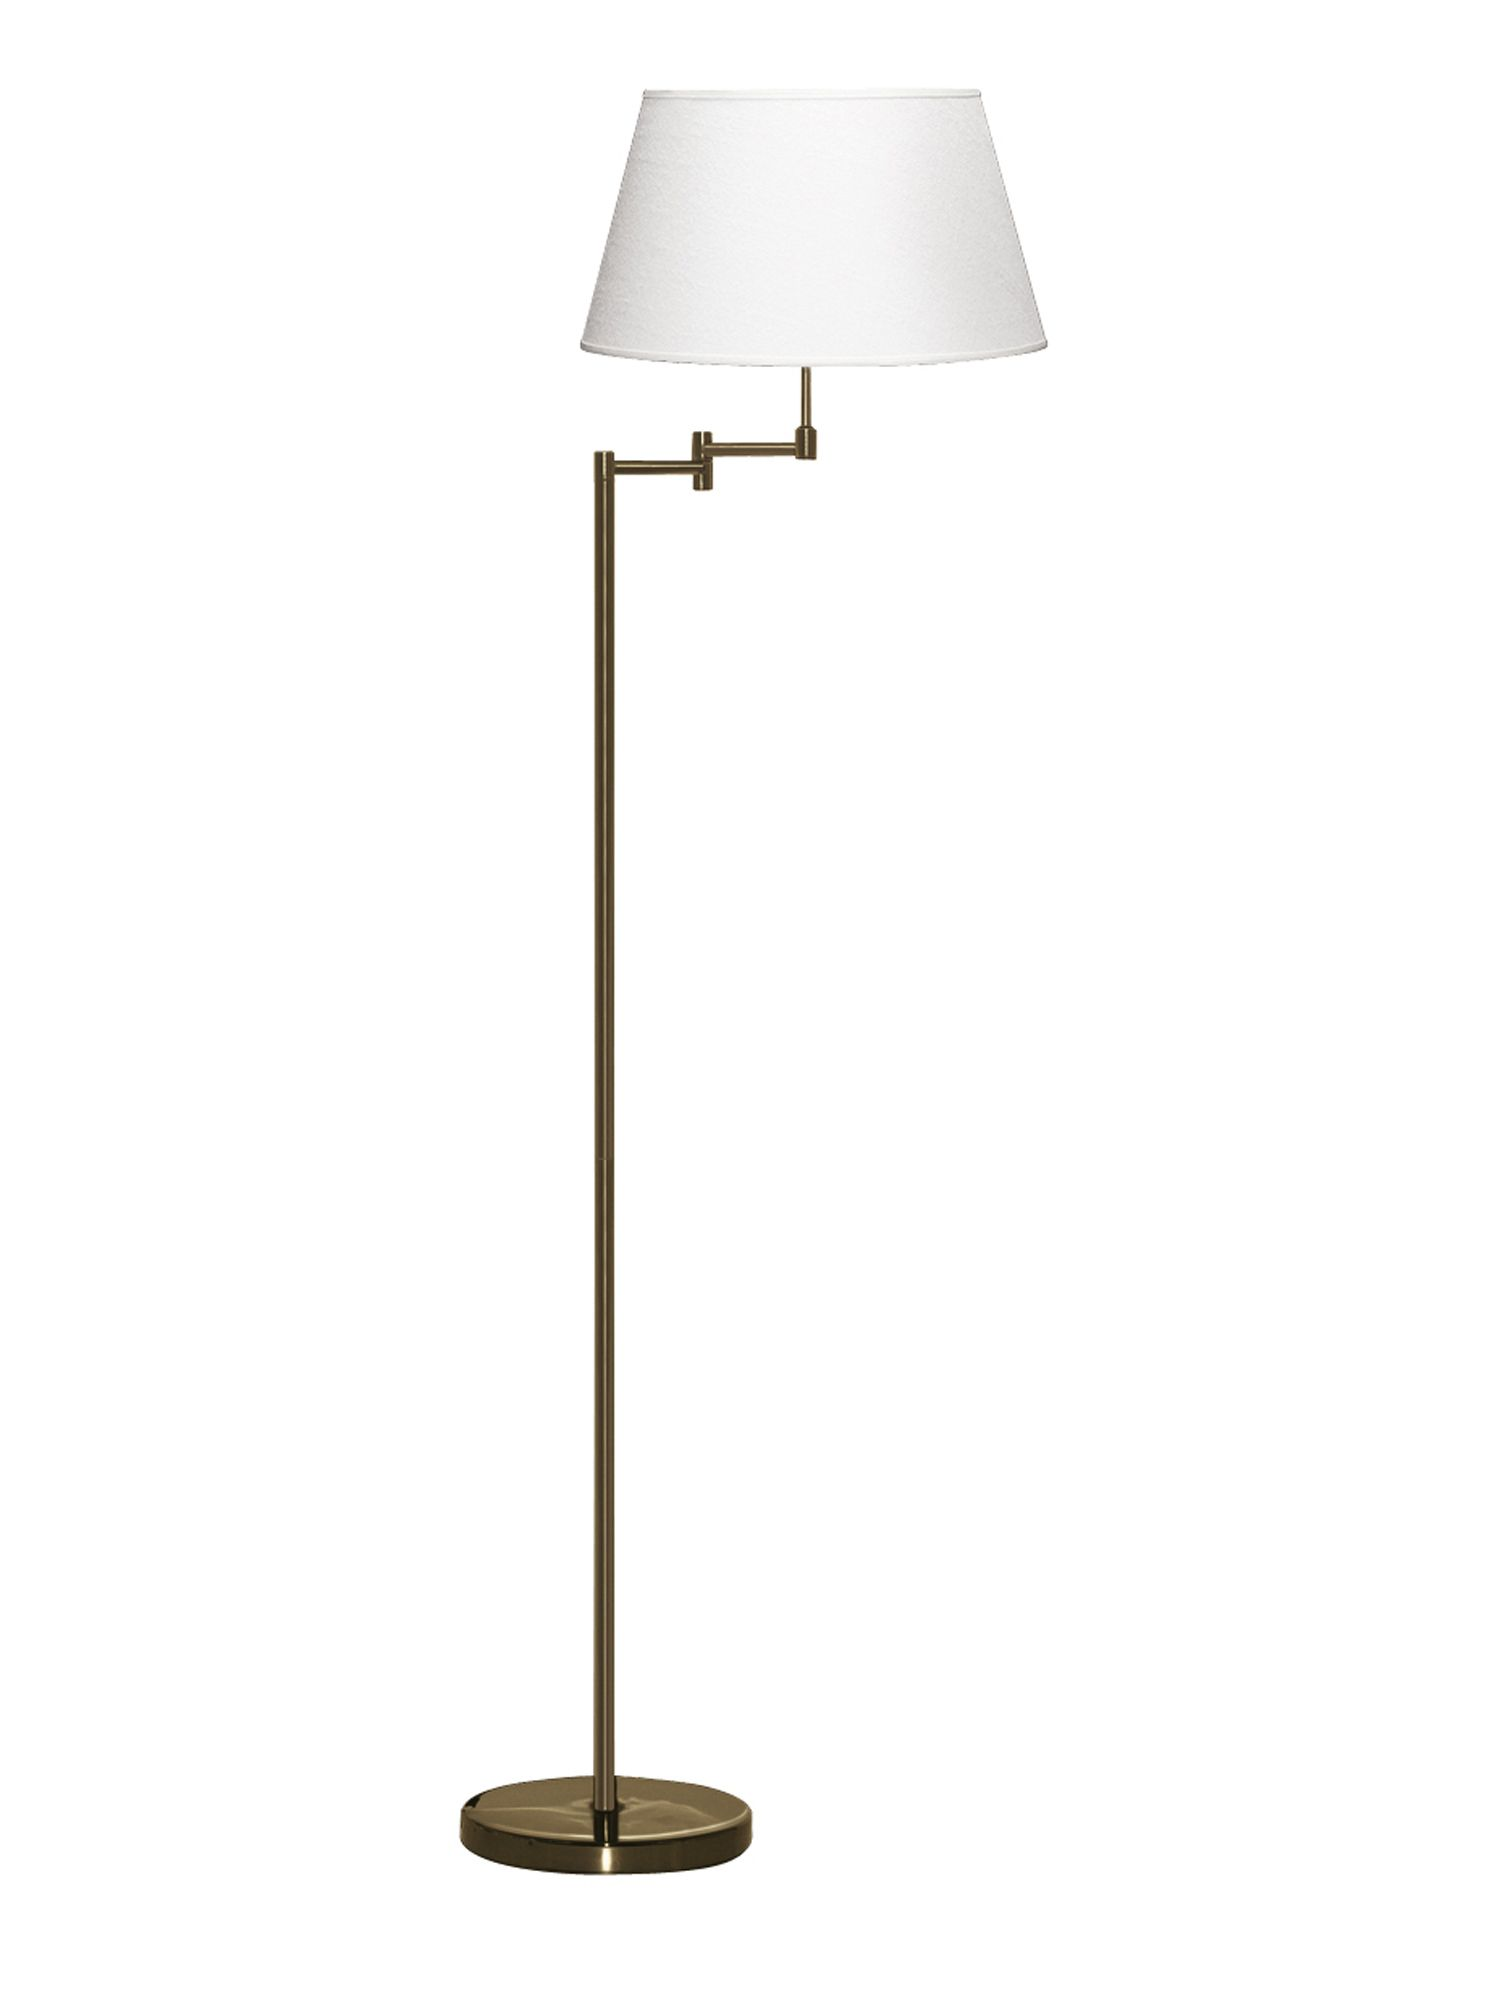 House of Fraser Harrison swing arm floor lamp, antique brass